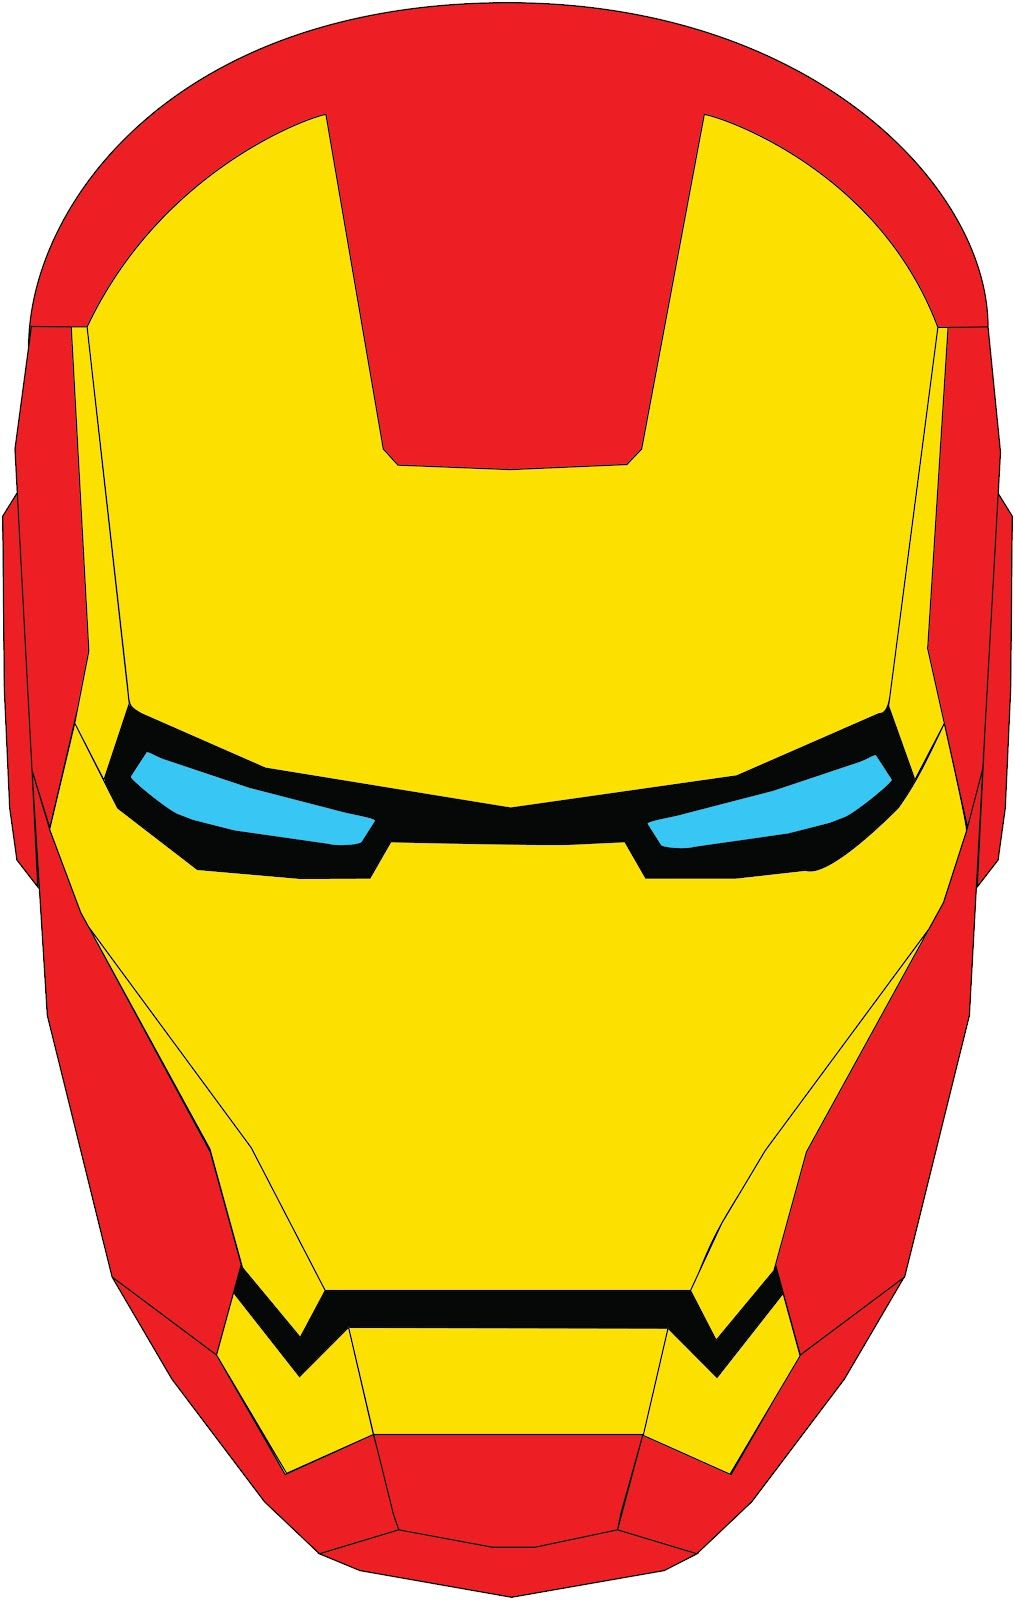 Iron man face iron man and avengers en 2018 for Avengers mask template